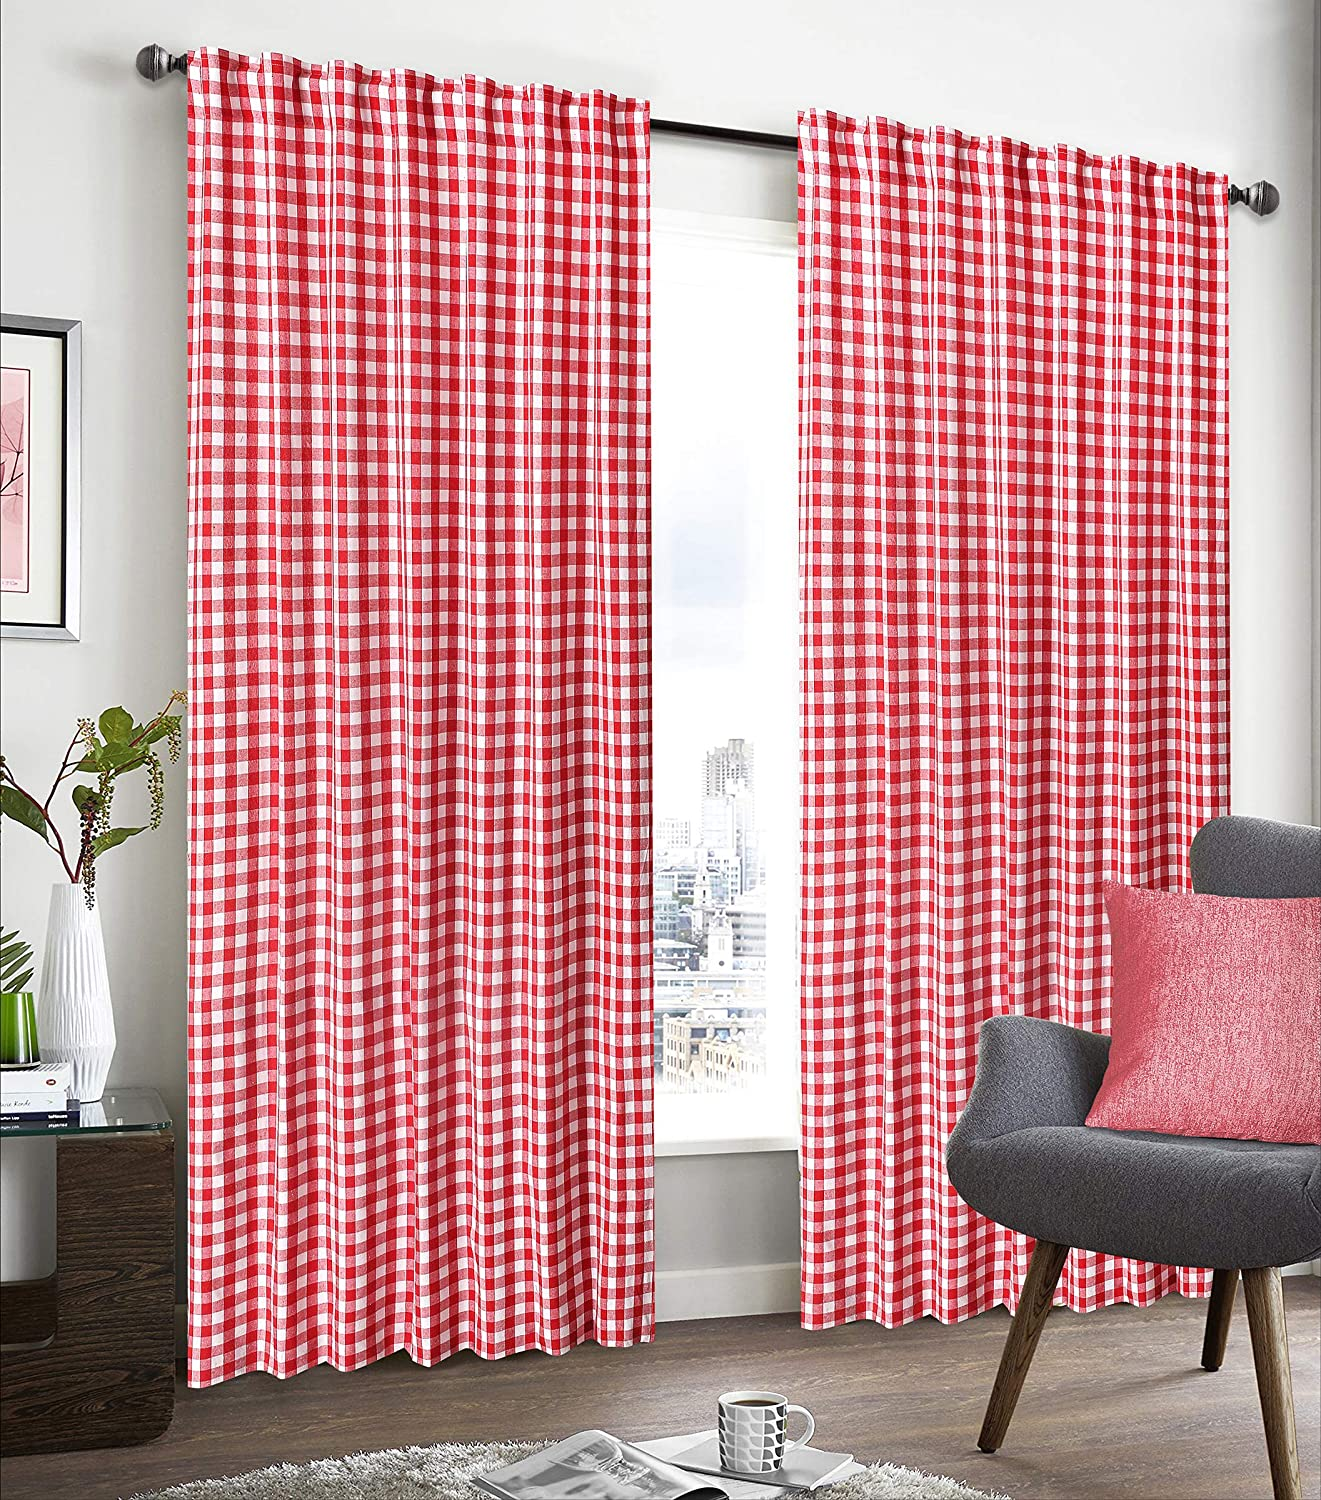 Tab Top Curtains,Farm House Curtain,Cotton Curtains,Curtain 2 Panel sets,Window Curtain Panel in Cingham Check Cotton 50x96 Red/White,Curtain Set Of 2,Reverse window panels,Curtain Drapes Panels